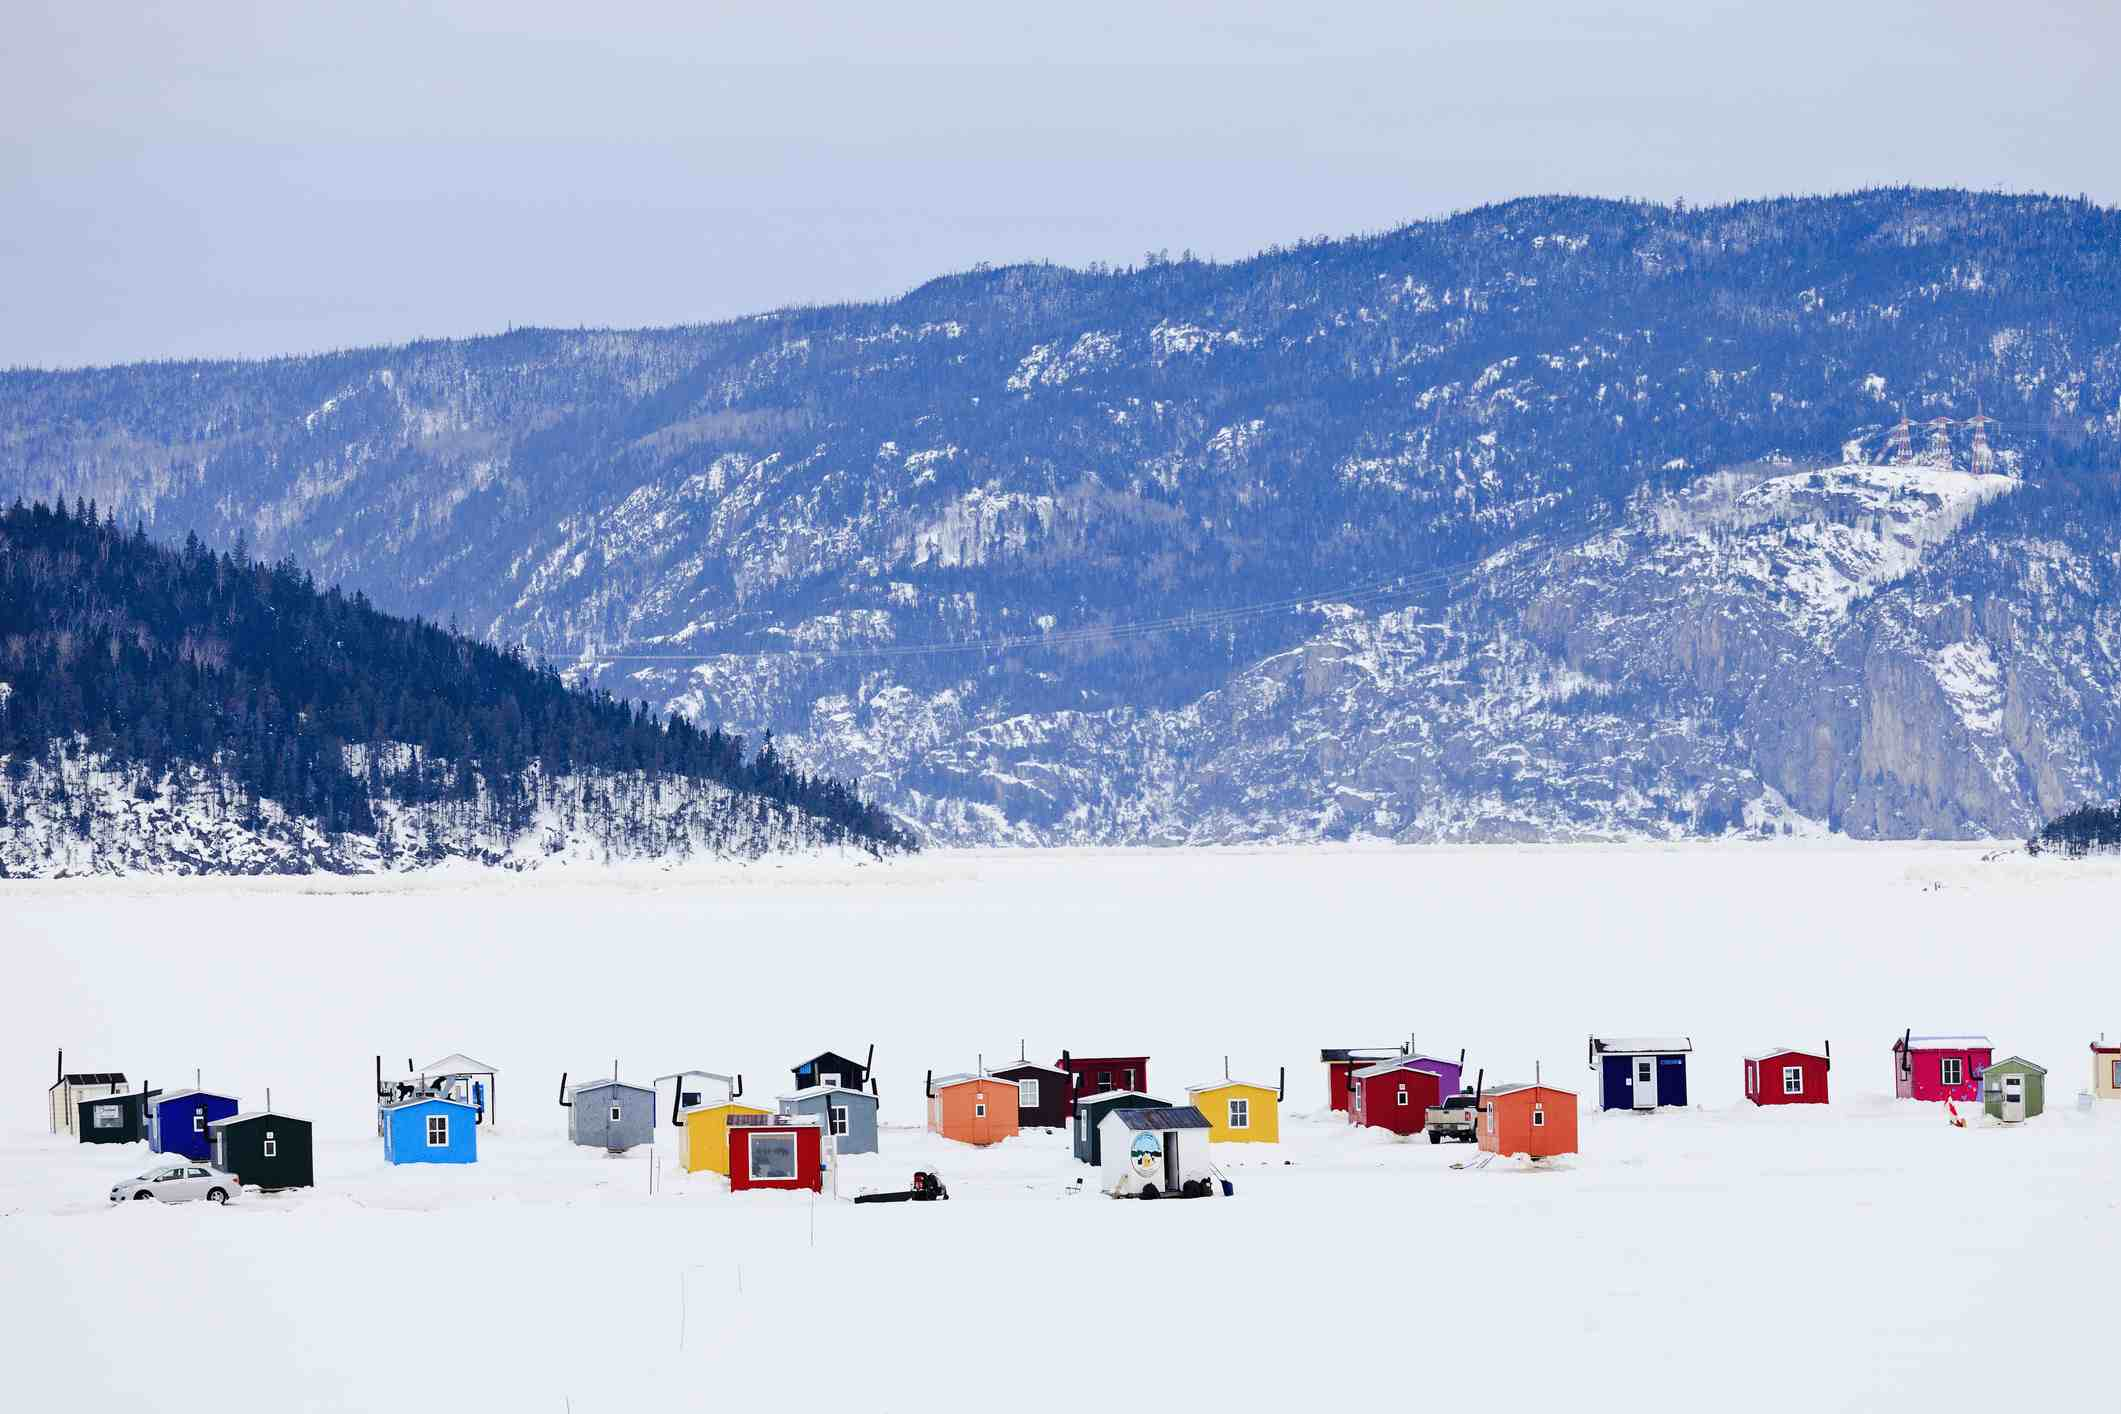 Ice Fishing Huts On Saguenay River, Quebec, Canada